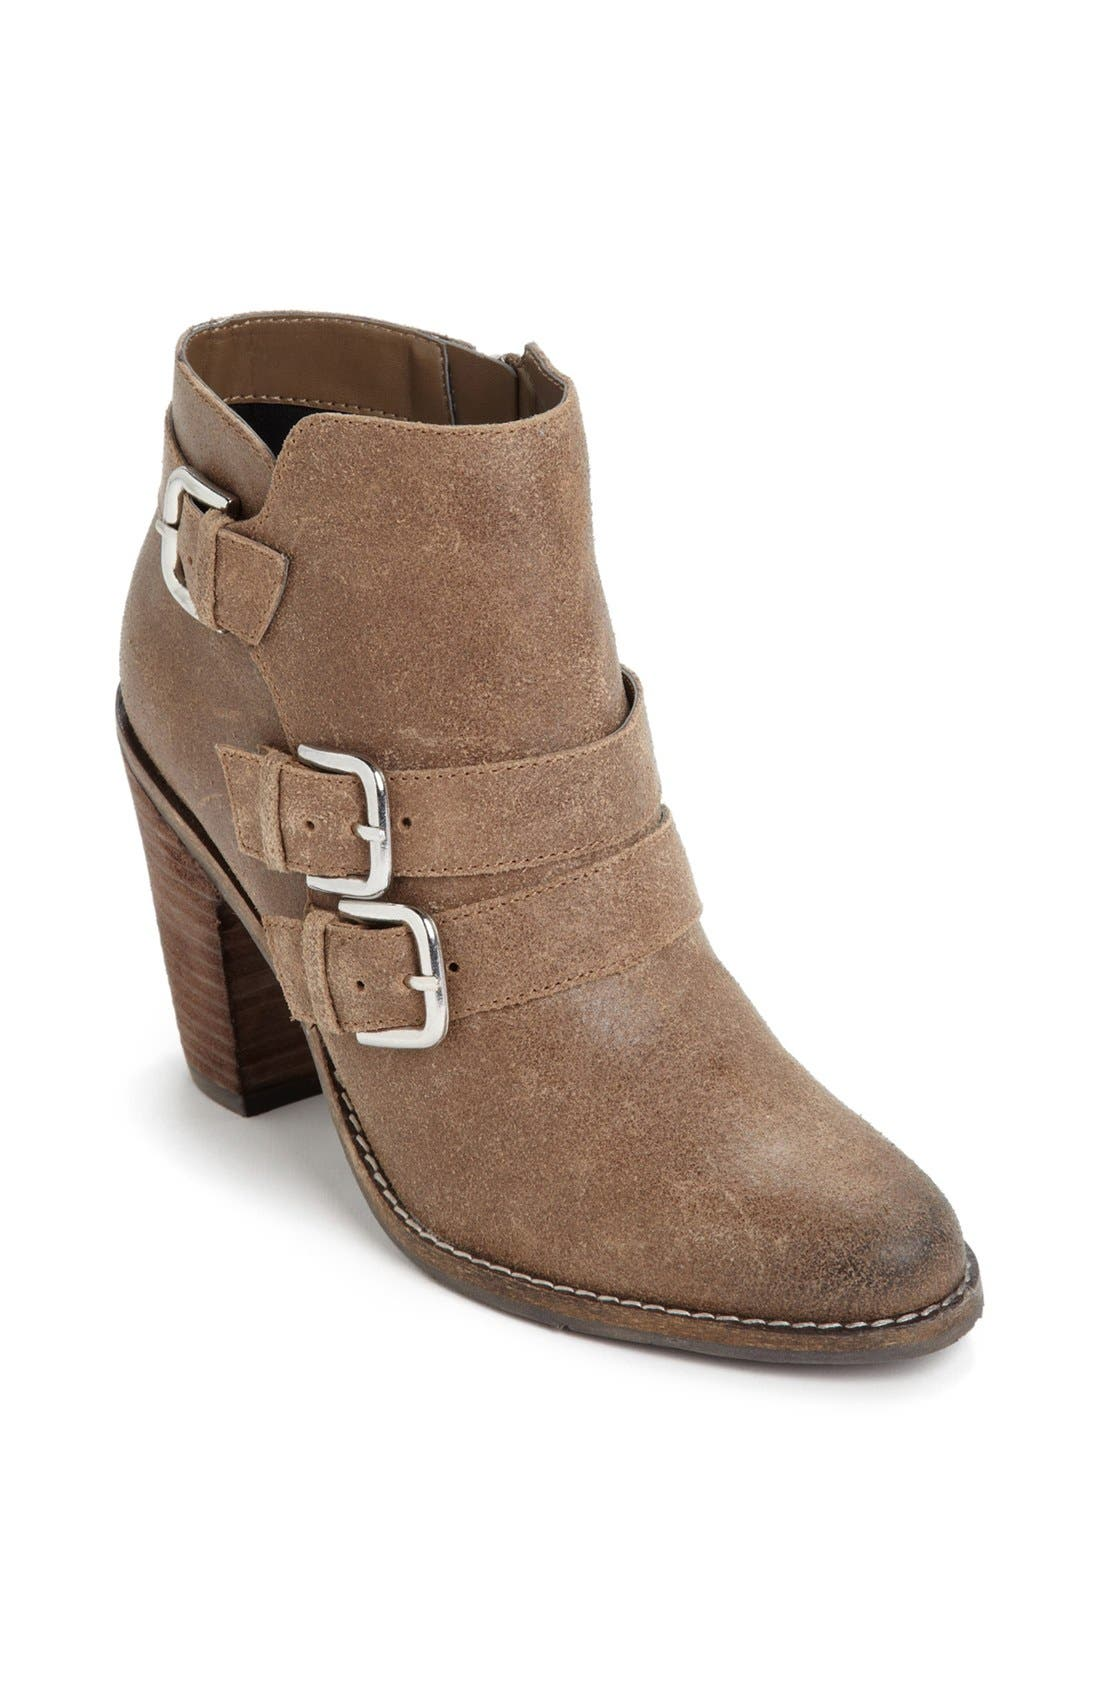 Alternate Image 1 Selected - DV by Dolce Vita 'Colten' Bootie (Nordstrom Exclusive)